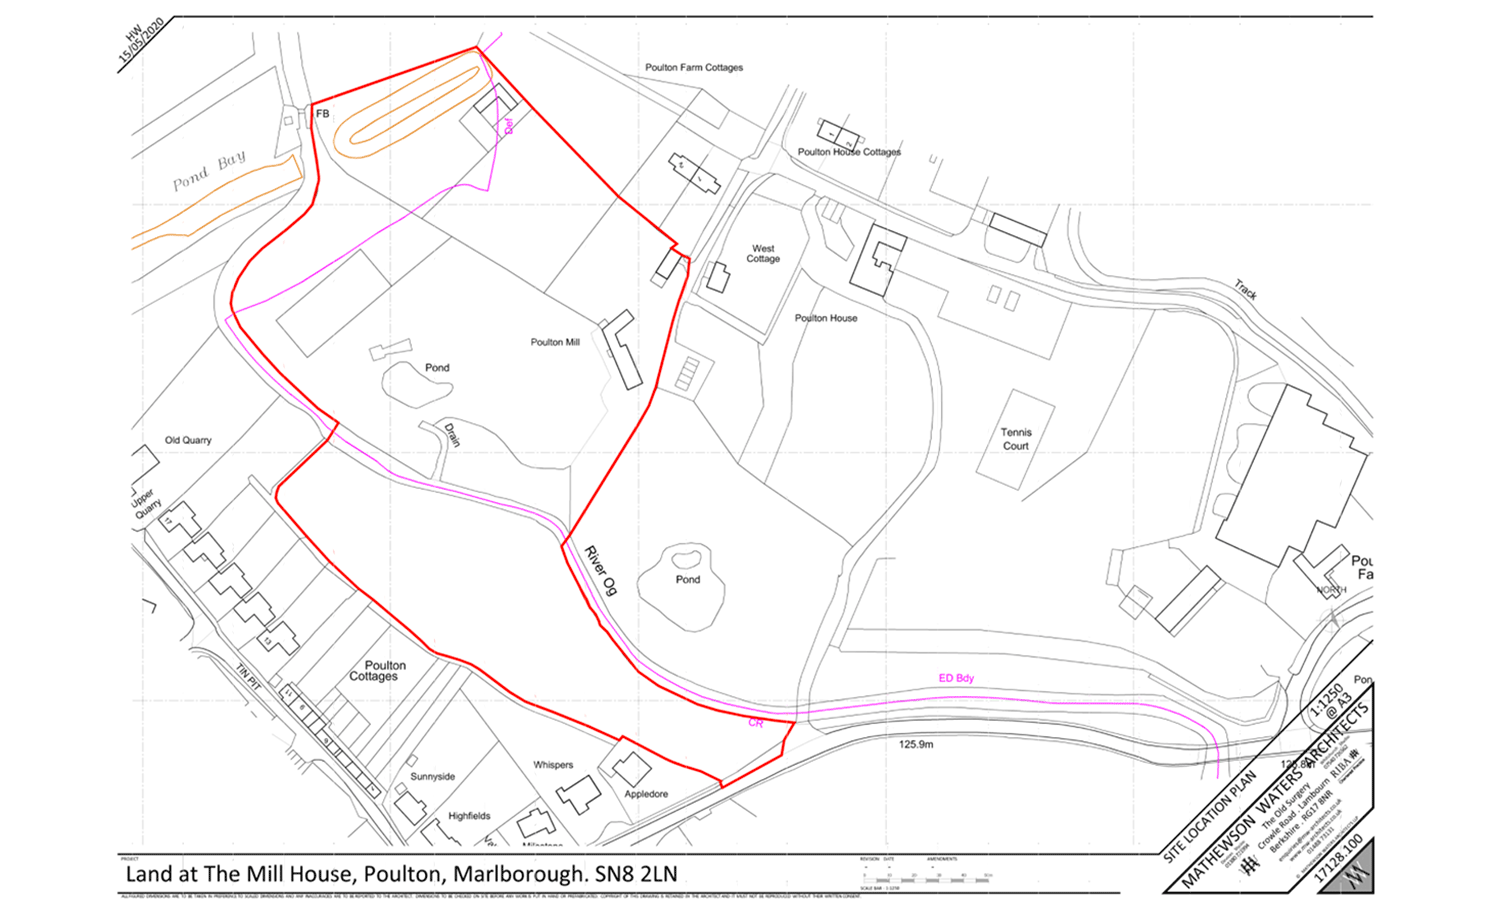 Poulton Mill equine clinic application